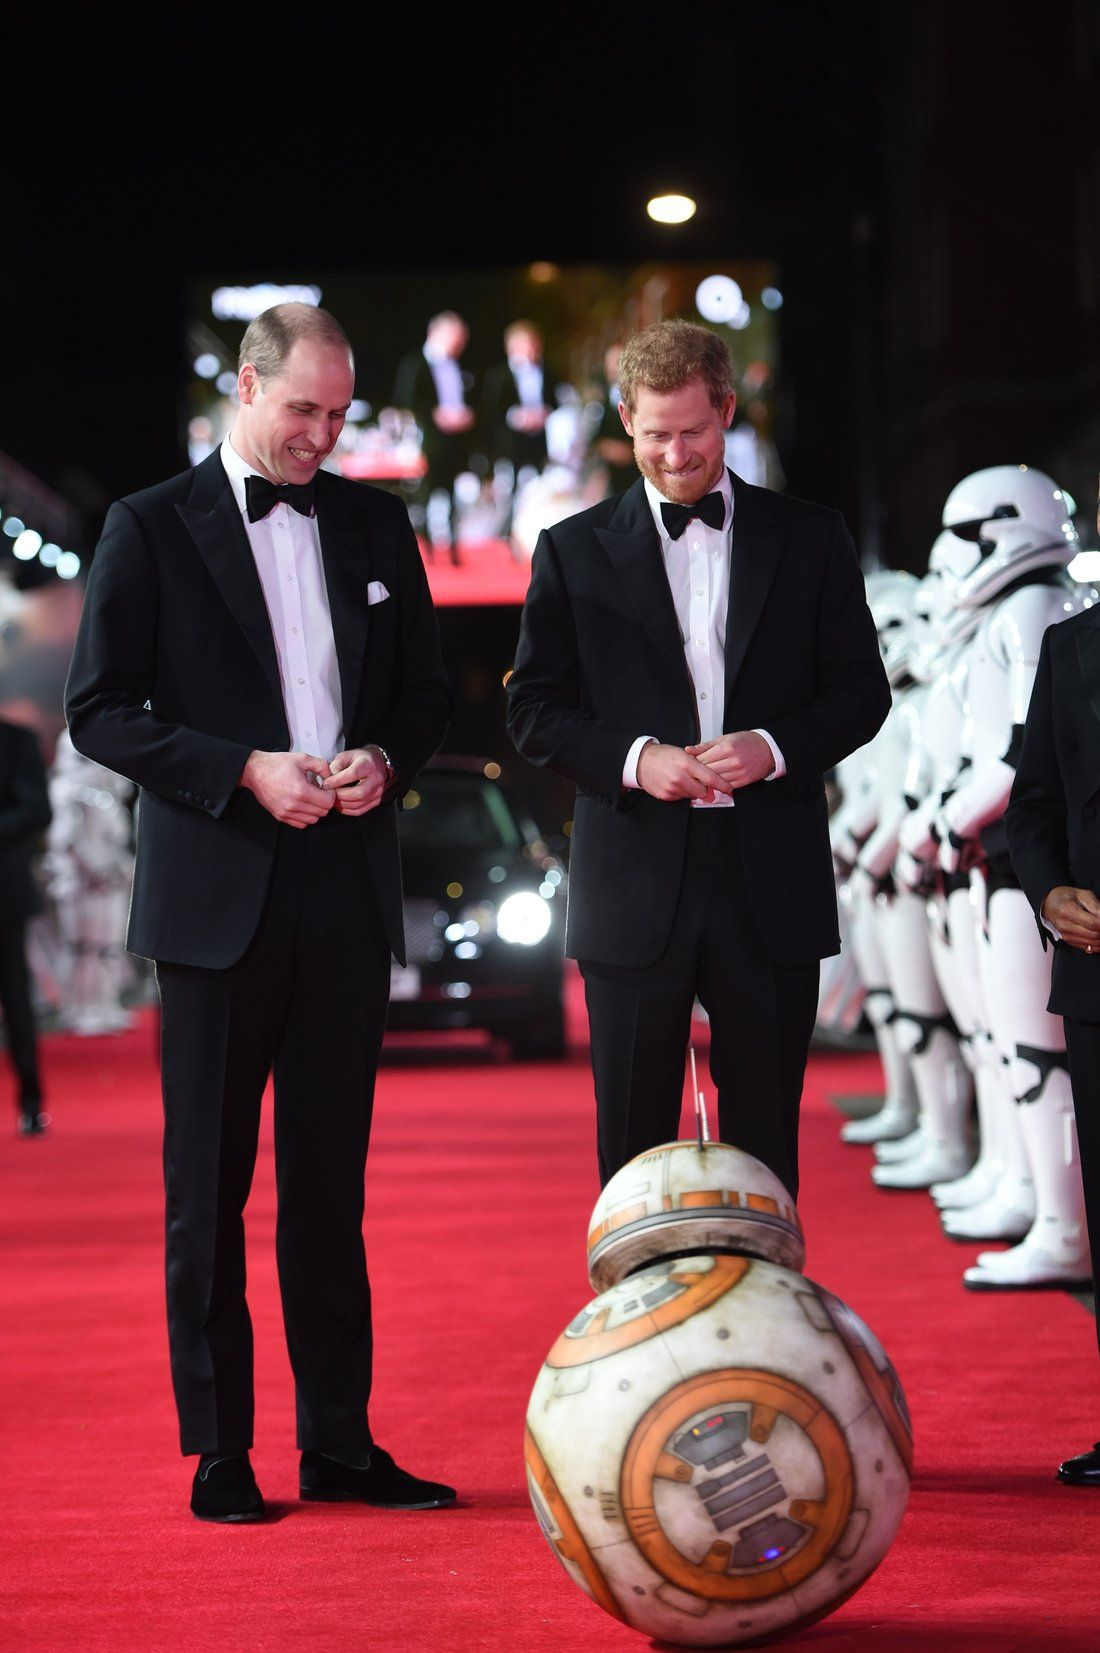 Prince William And Prince Harry Attend Star Wars London Premiere People Com